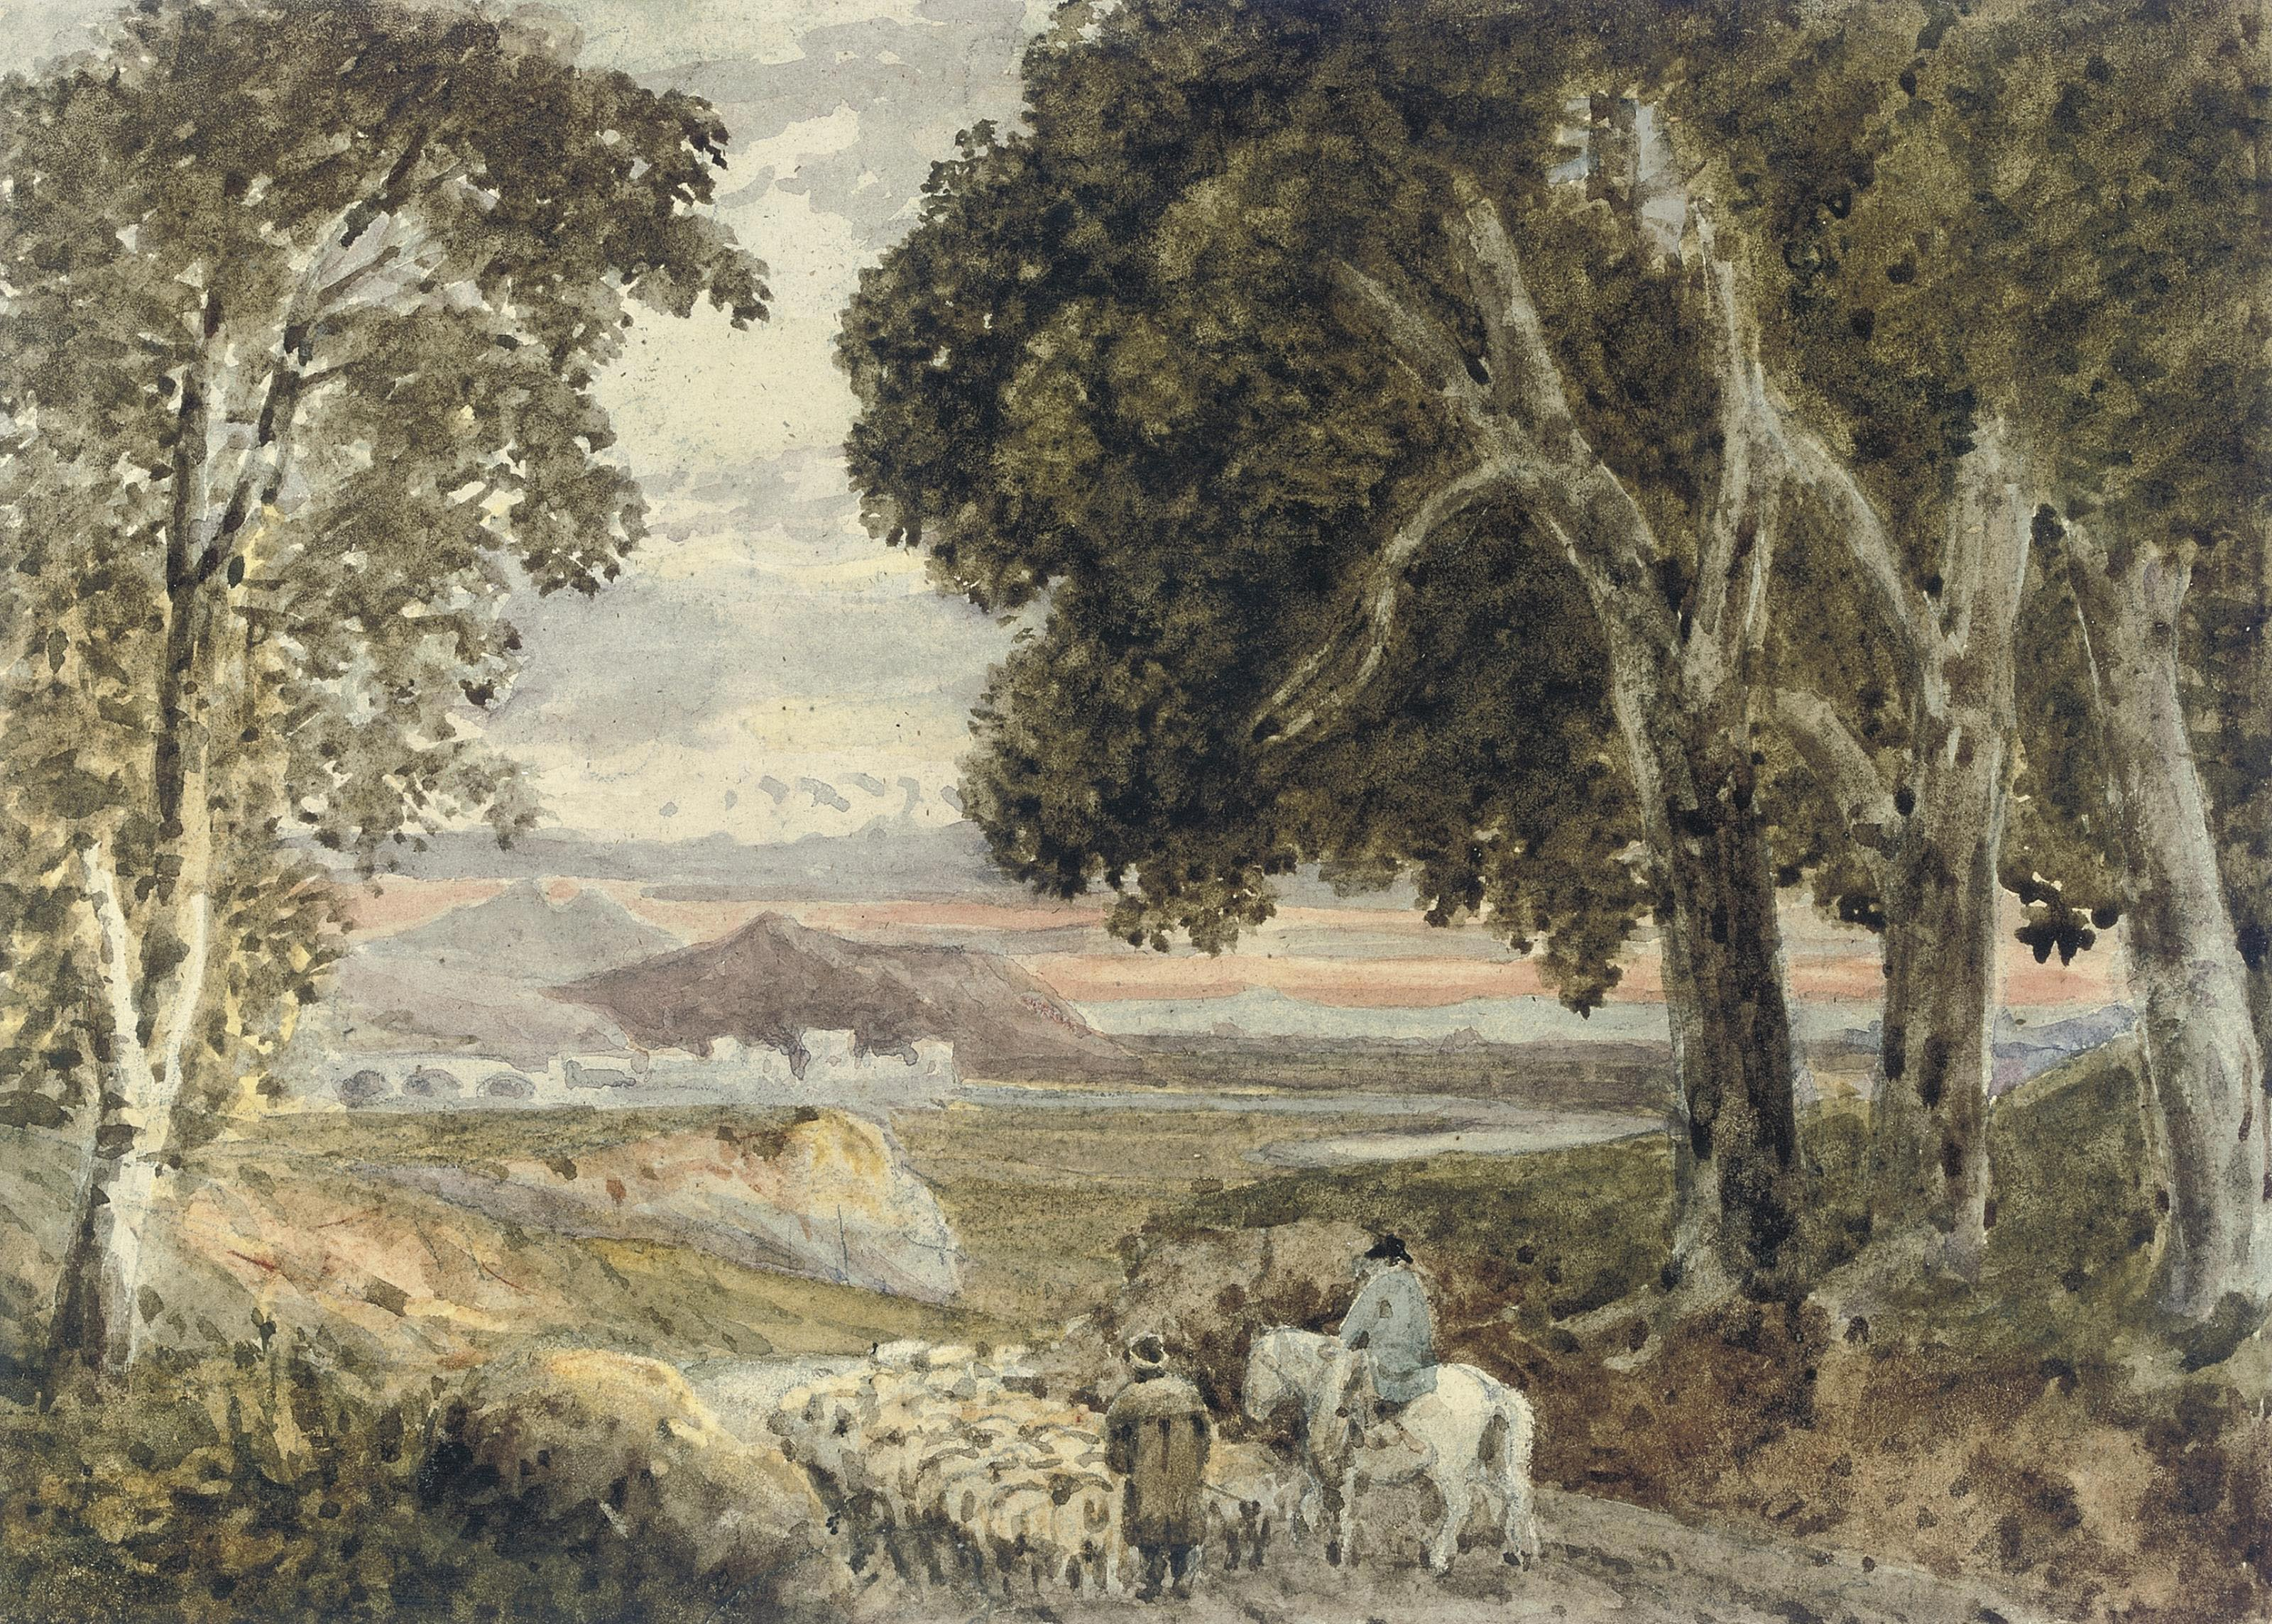 Shepherds with their flock at sunset, in a mountainous landscape